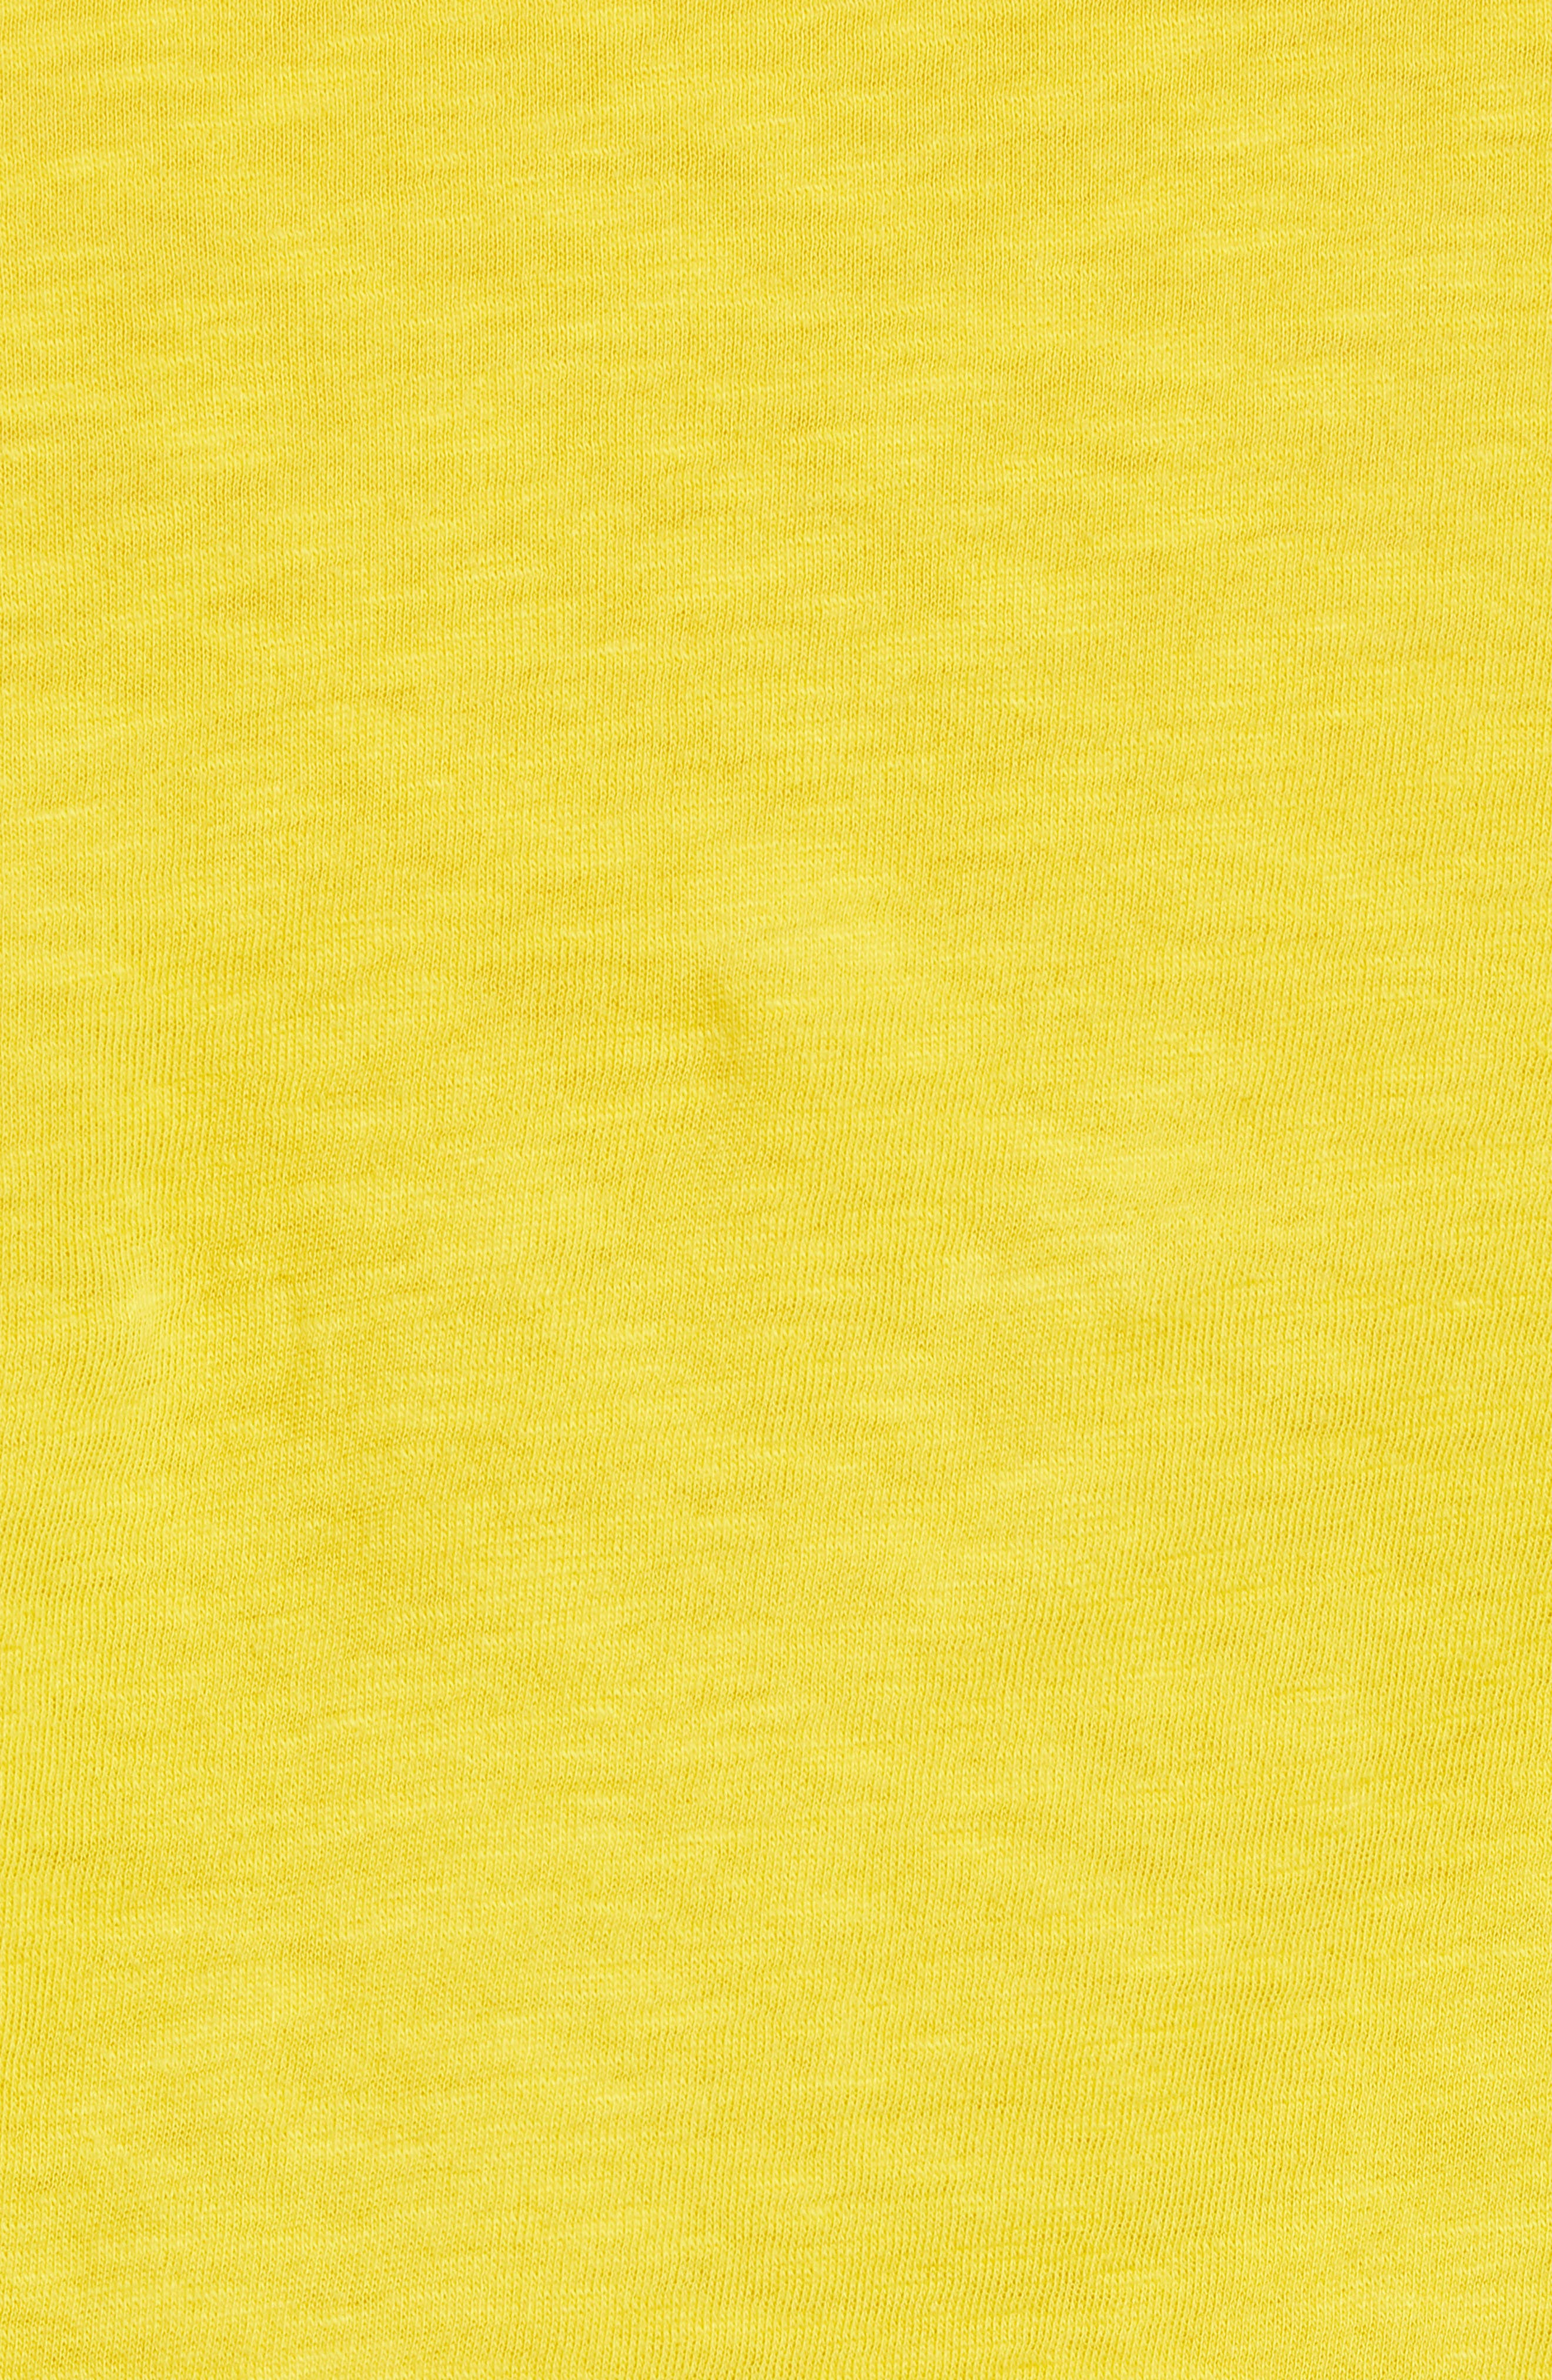 Lightweight Colorblock Cotton Tee,                             Alternate thumbnail 28, color,                             Yellow- White Lukah Combo